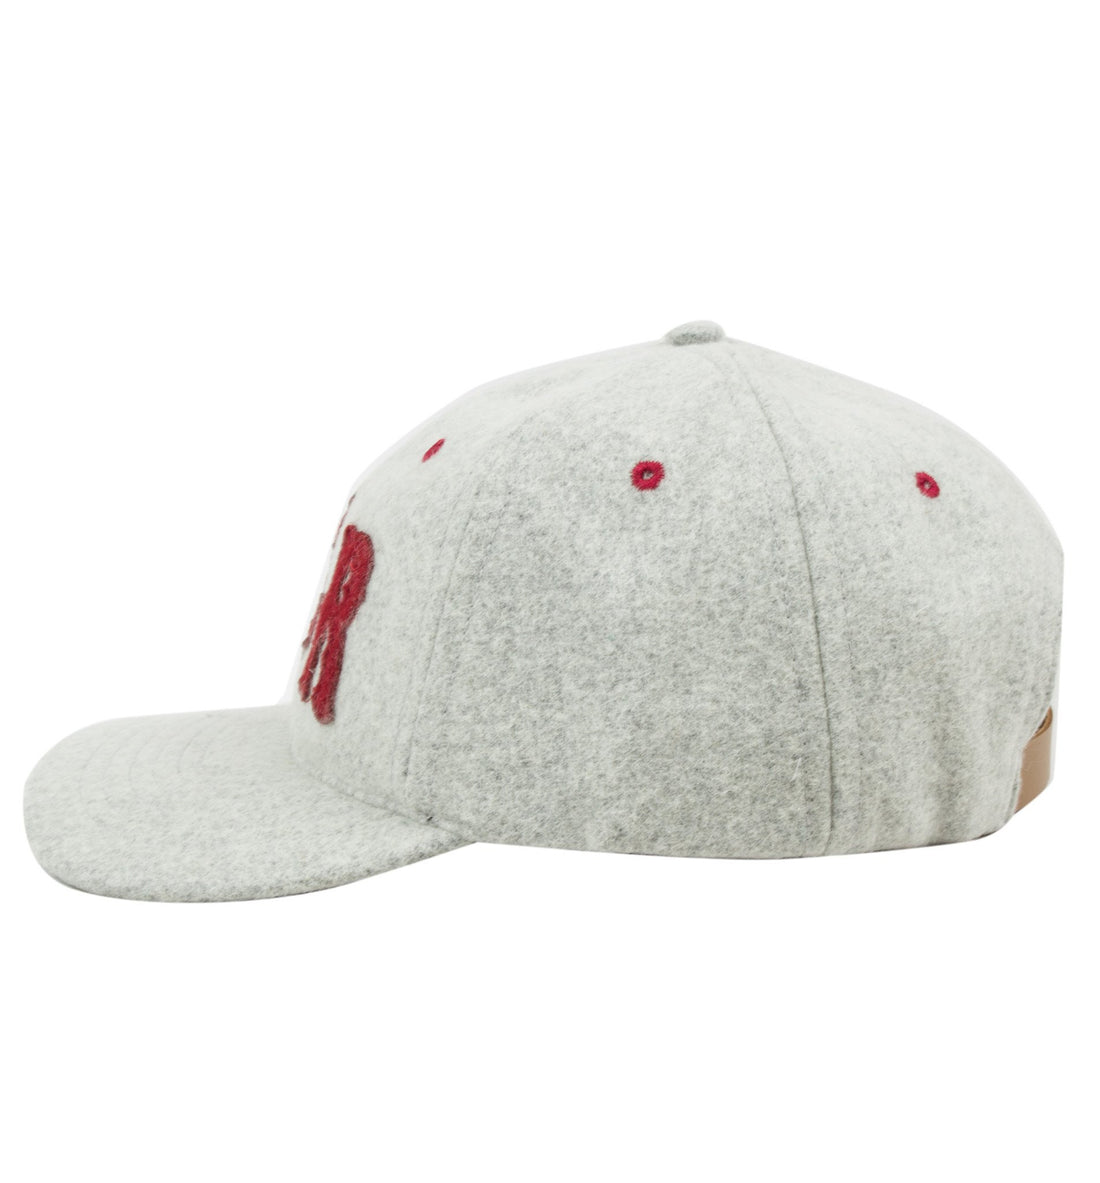 INR Slugger Hat - Accessories: Headwear: Men's - Iron and Resin